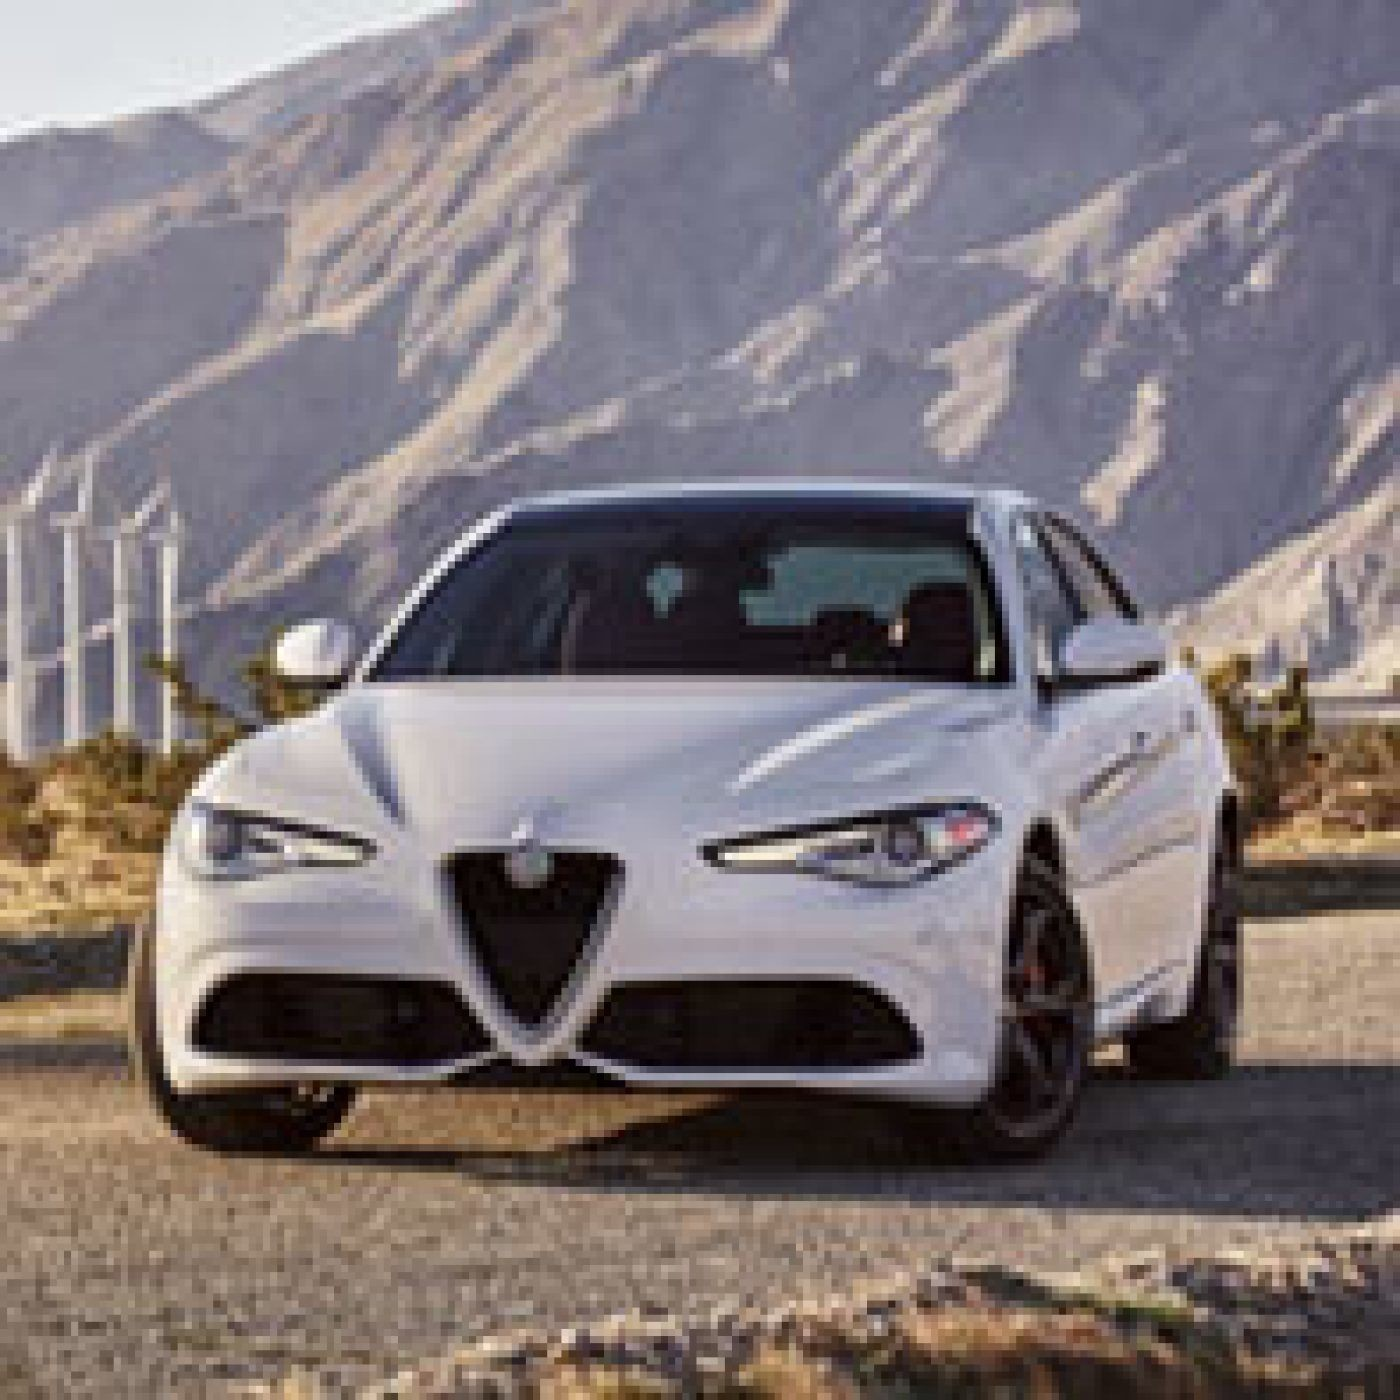 Front view of the white 2019 Alfa Romeo Giulia parked on a street in front of a mountain